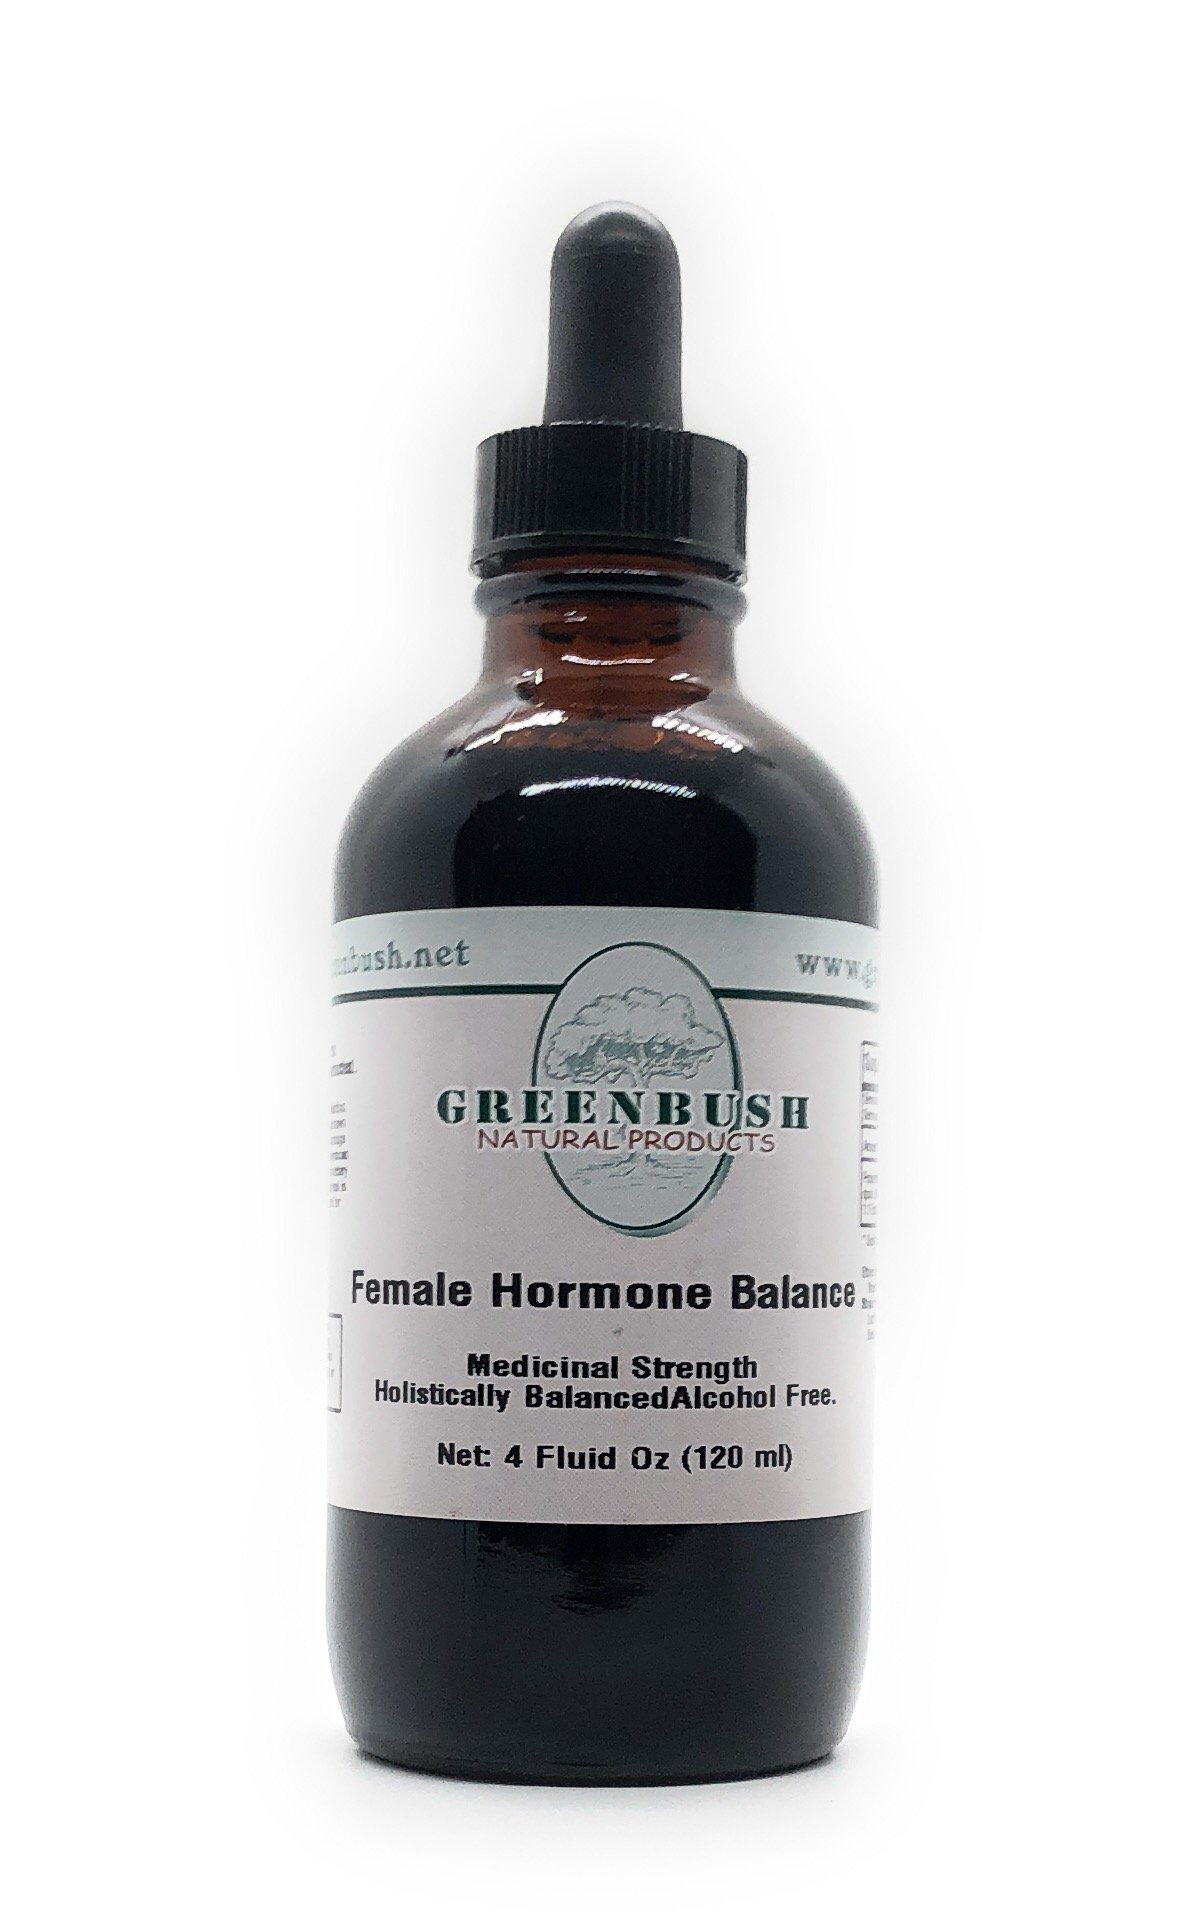 Female Hormone Balance Formula Alcohol-Free Liquid Concentrated Extract. Super Value Size 4oz Bottle (120ml) 240 Doses of 500mg. Top Herbs reproductive Health, Menstrual Cycle and Menopause Symptoms